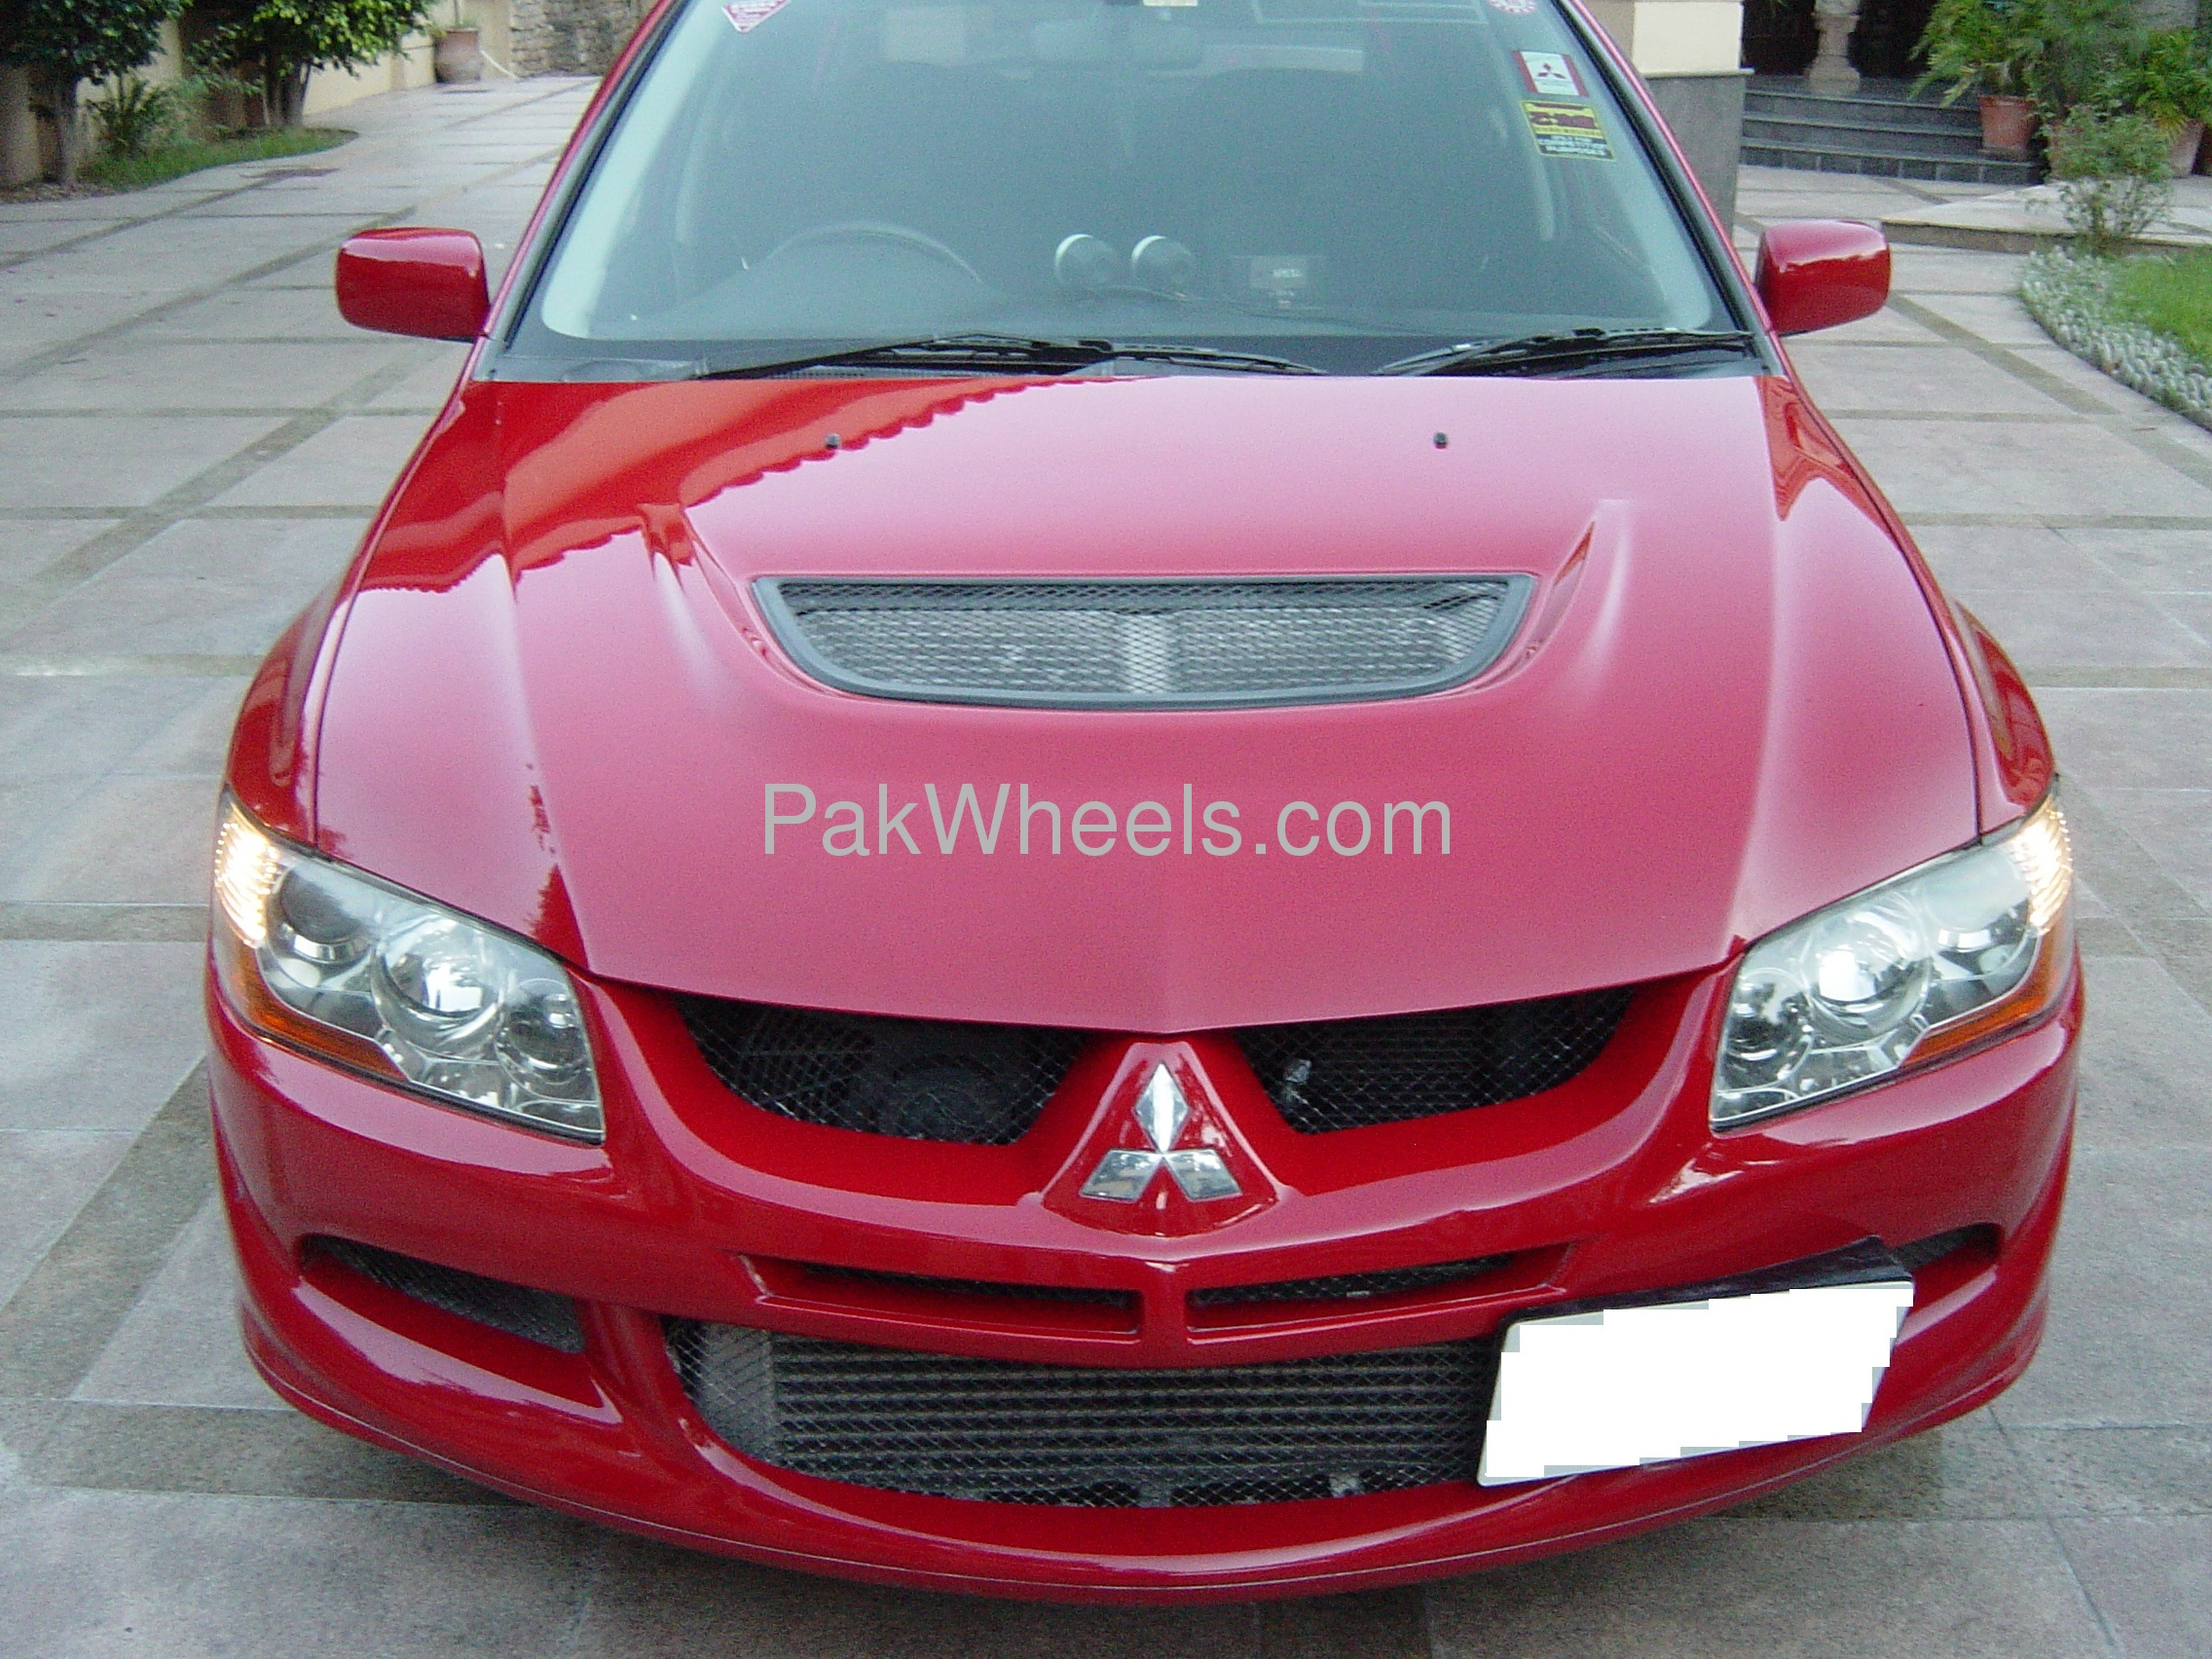 used mitsubishi lancer evolution 2004 car for sale in islamabad 269168 pakwheels. Black Bedroom Furniture Sets. Home Design Ideas